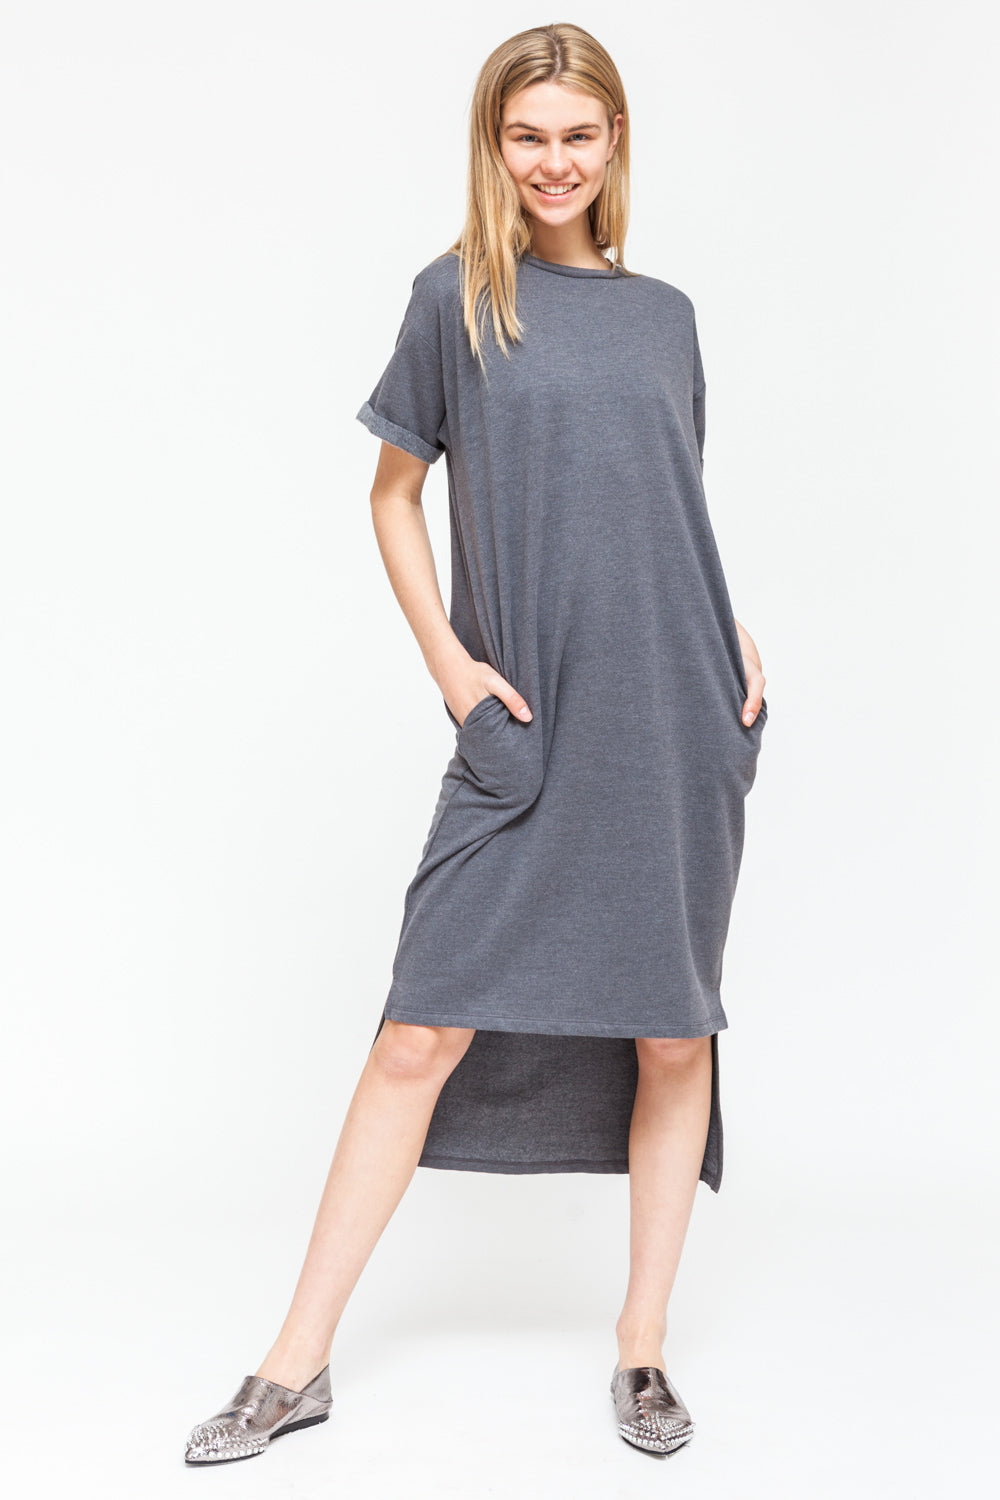 0329a2f91c29 NATIVE YOUTH - METAMORPHIC T-SHIRT DRESS - Ozon Boutique